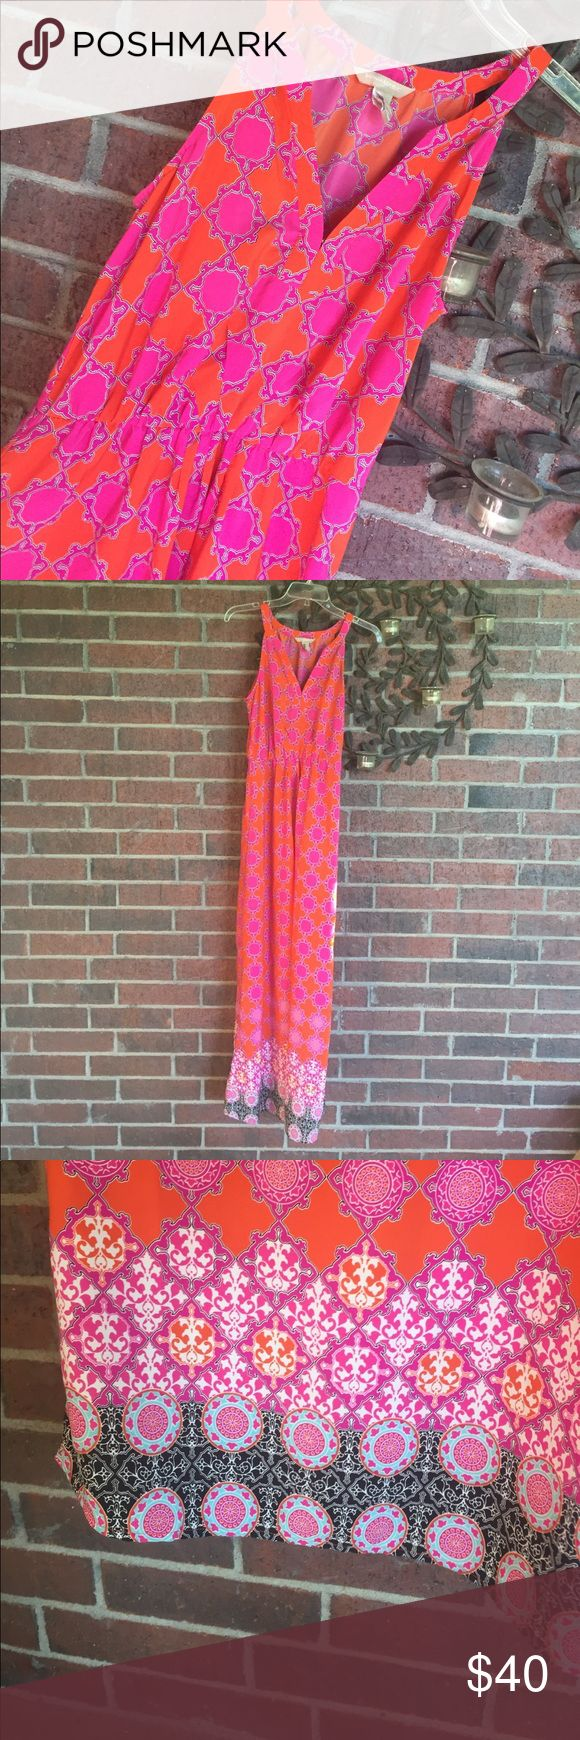 Banana Republic Pink Orange Maxi Dress Size 2 Gorgeous dress! Size 2 with measurements of 14-16 (stretchy) in from underarm to underarm and 55 in from top of shoulder down.  Excellent condition!  From the factory store. (73162) Banana Republic Dresses Maxi